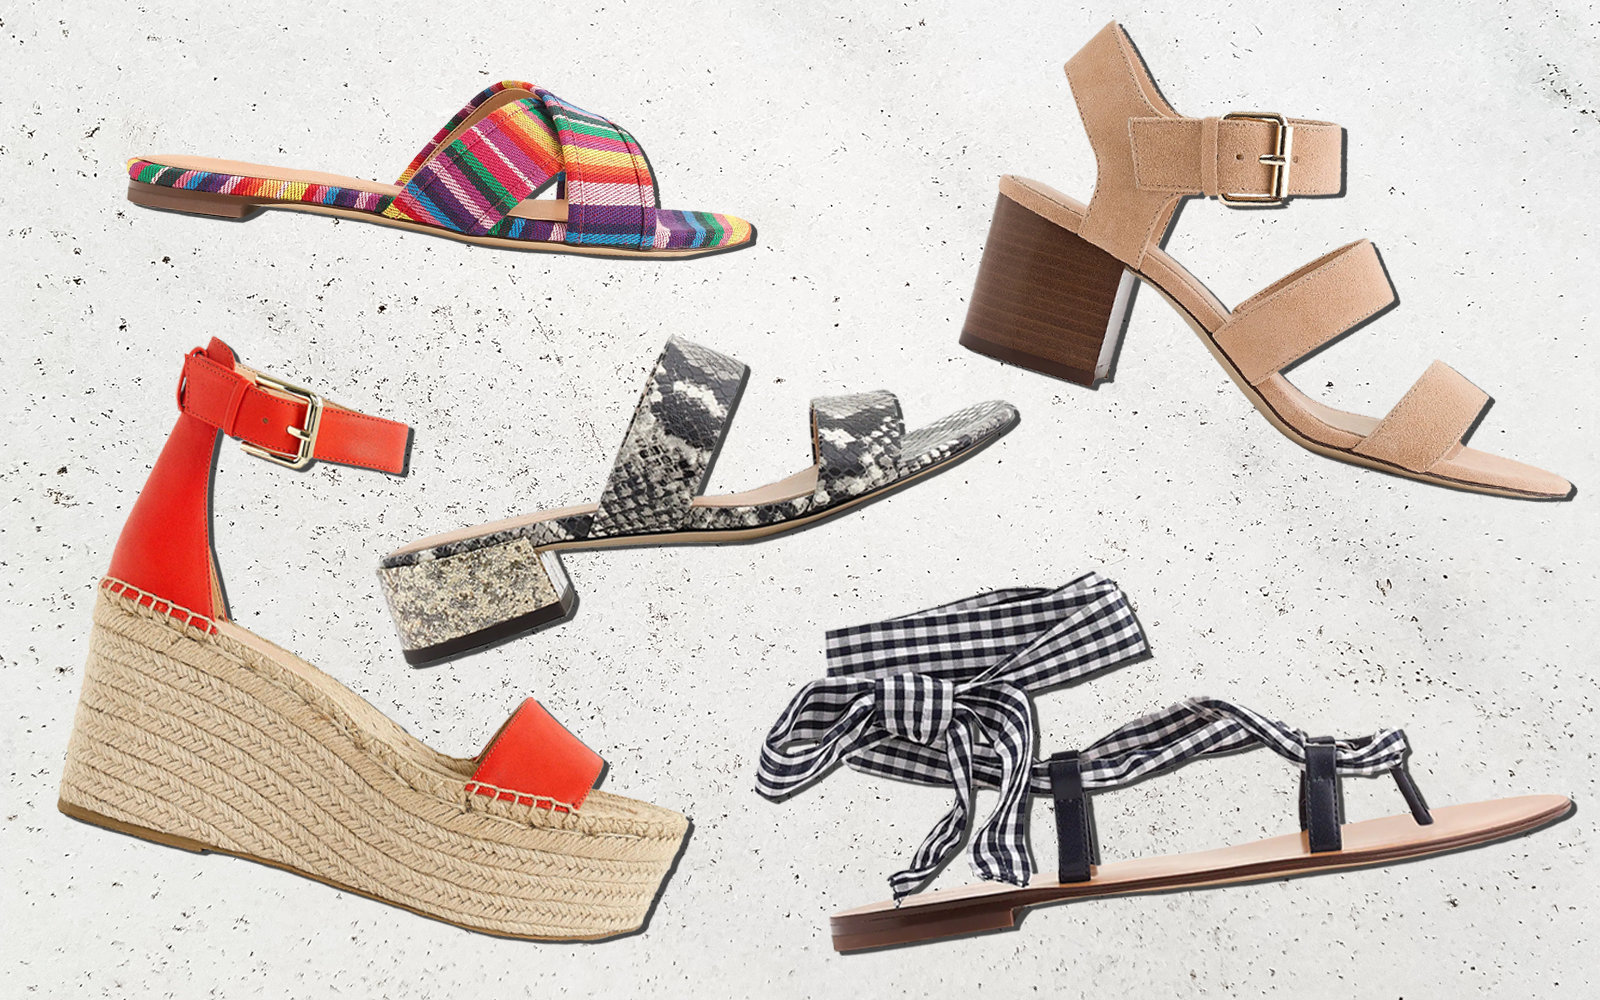 midsummer-sandals-sale-jcrew-JCREWSANDALS0818